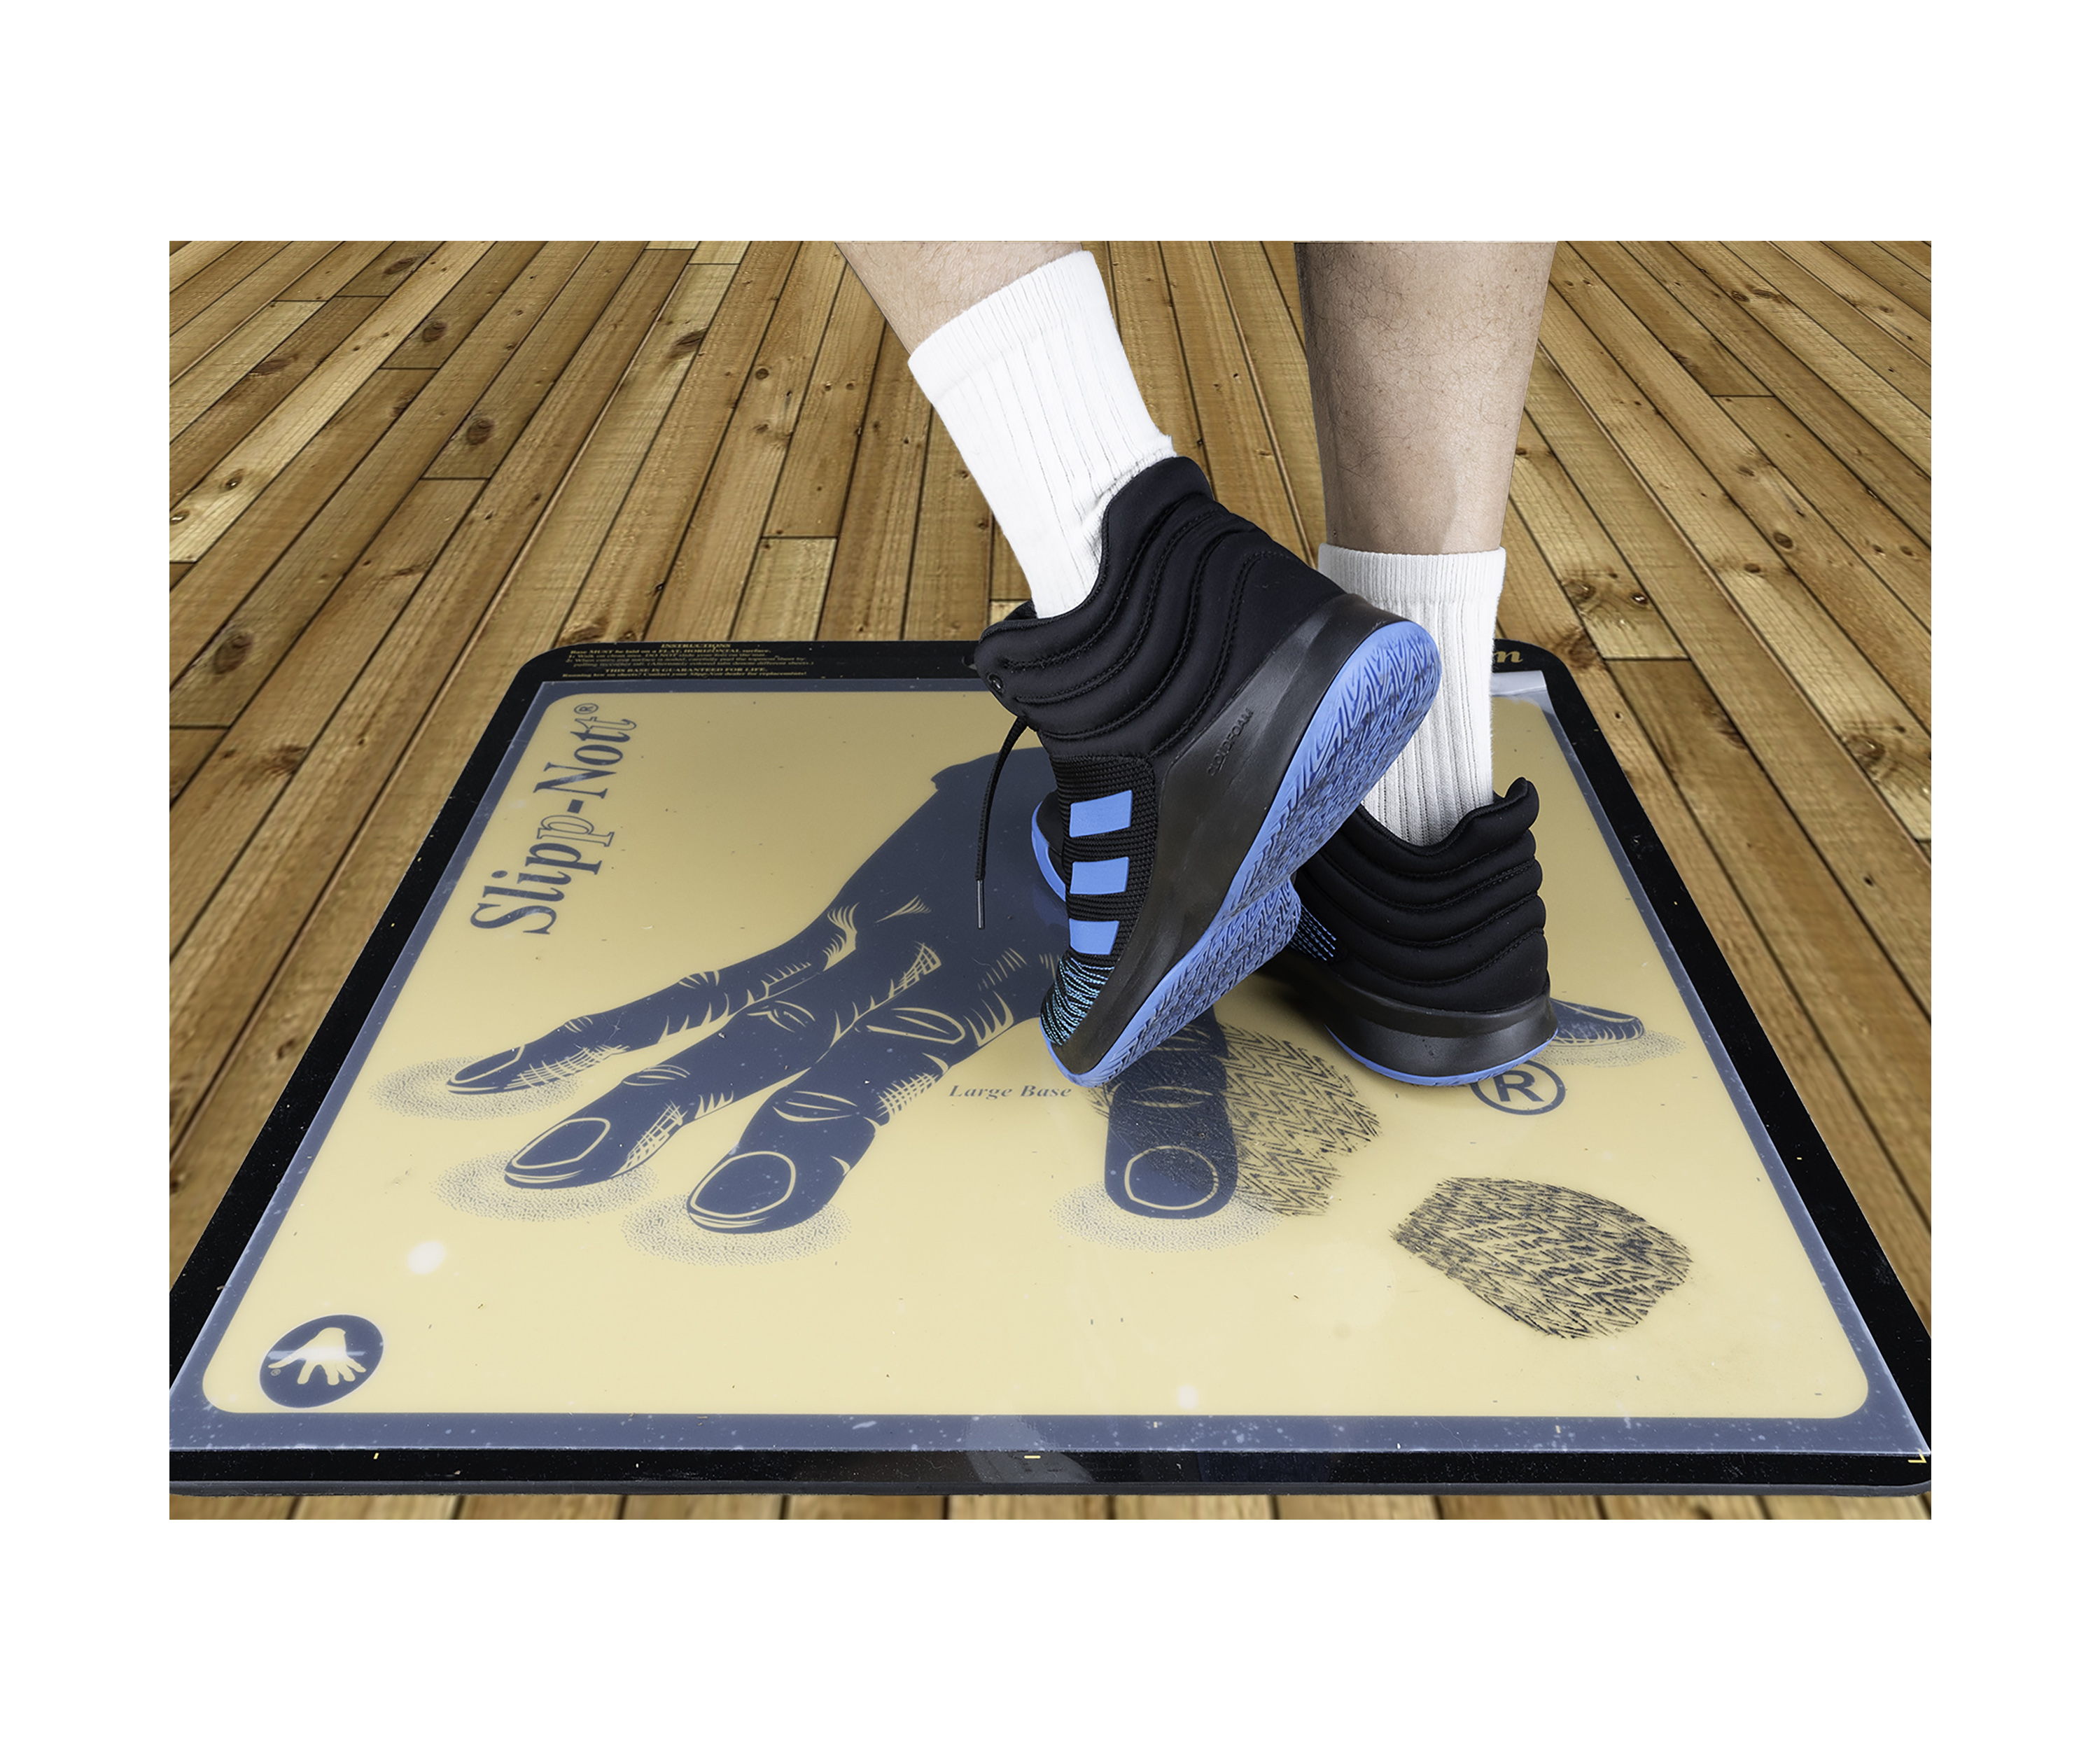 Athlete steps on adhesive sports traction mat to lift dirt from sneaker soles